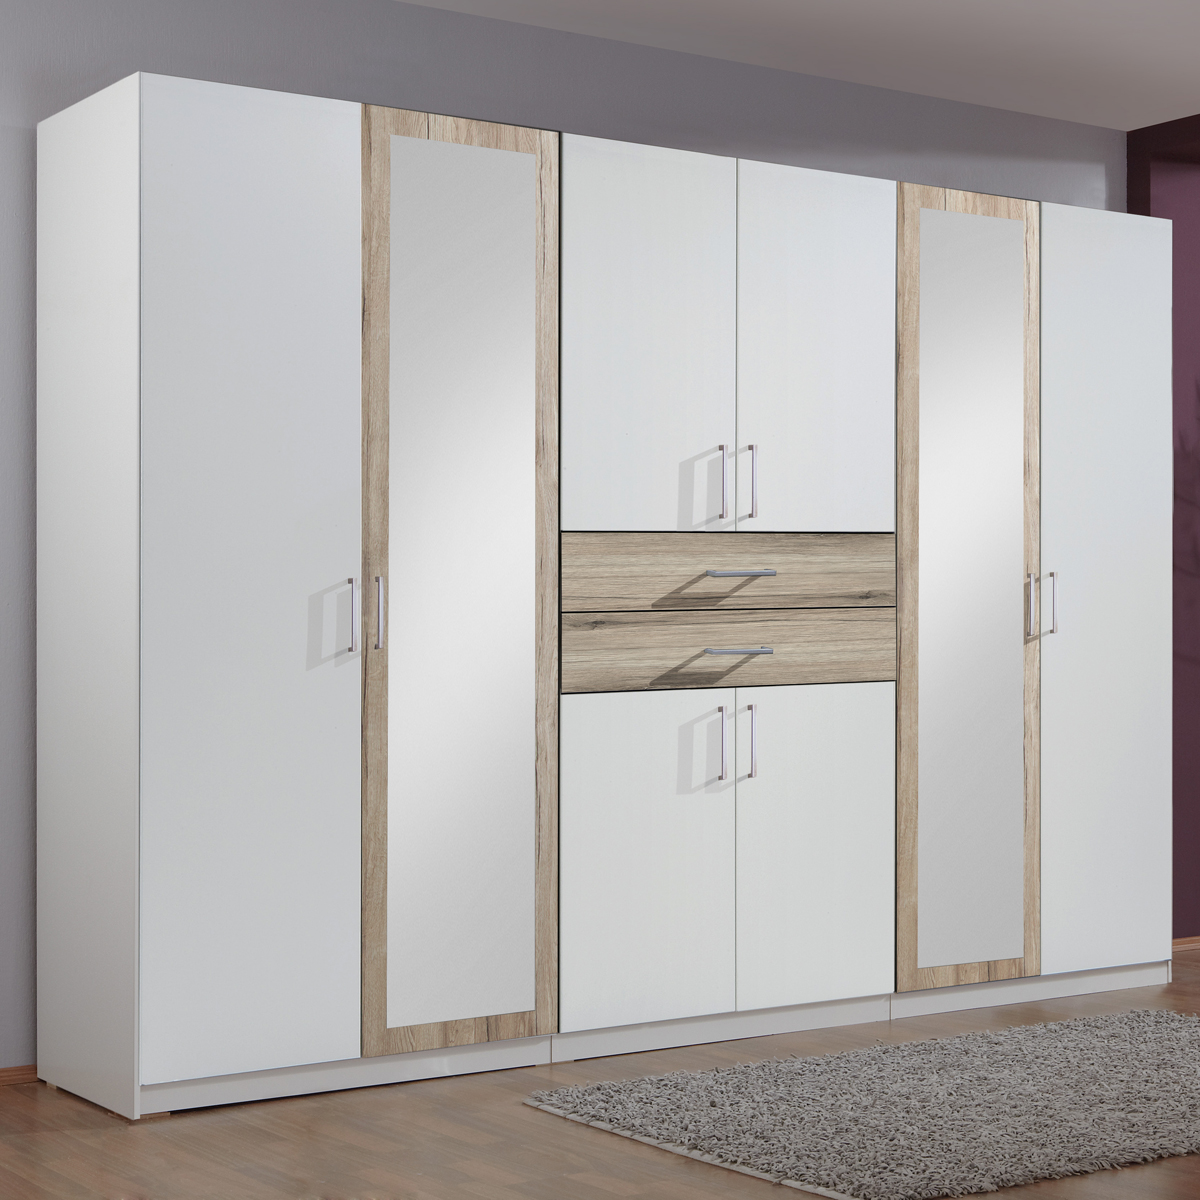 kleiderschrank 270 cm breit kleiderschrank gamma wei nussbaum spiegel 270 cm breit dreht. Black Bedroom Furniture Sets. Home Design Ideas